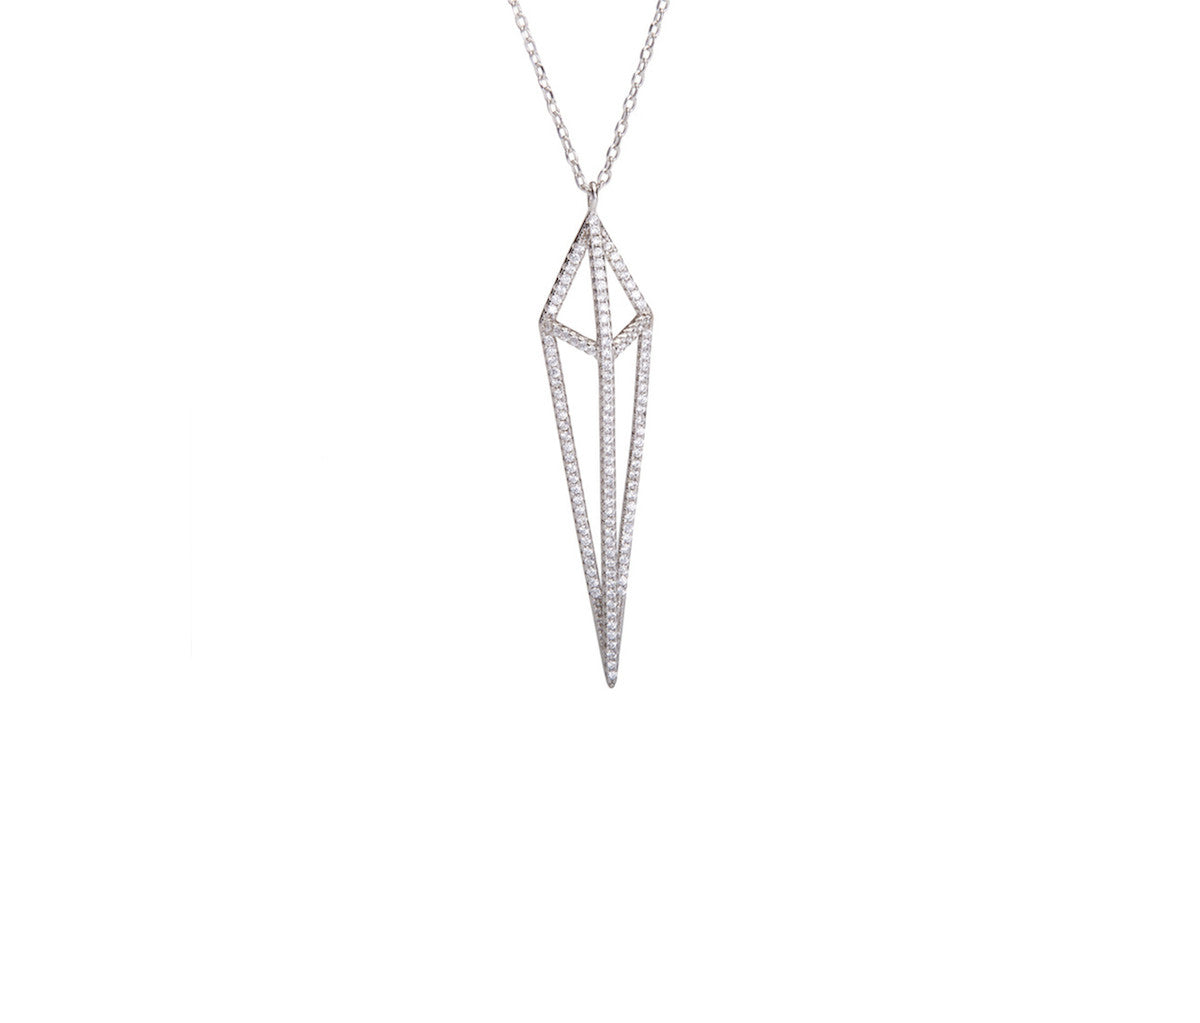 Silver Rhombus-shaped Necklace